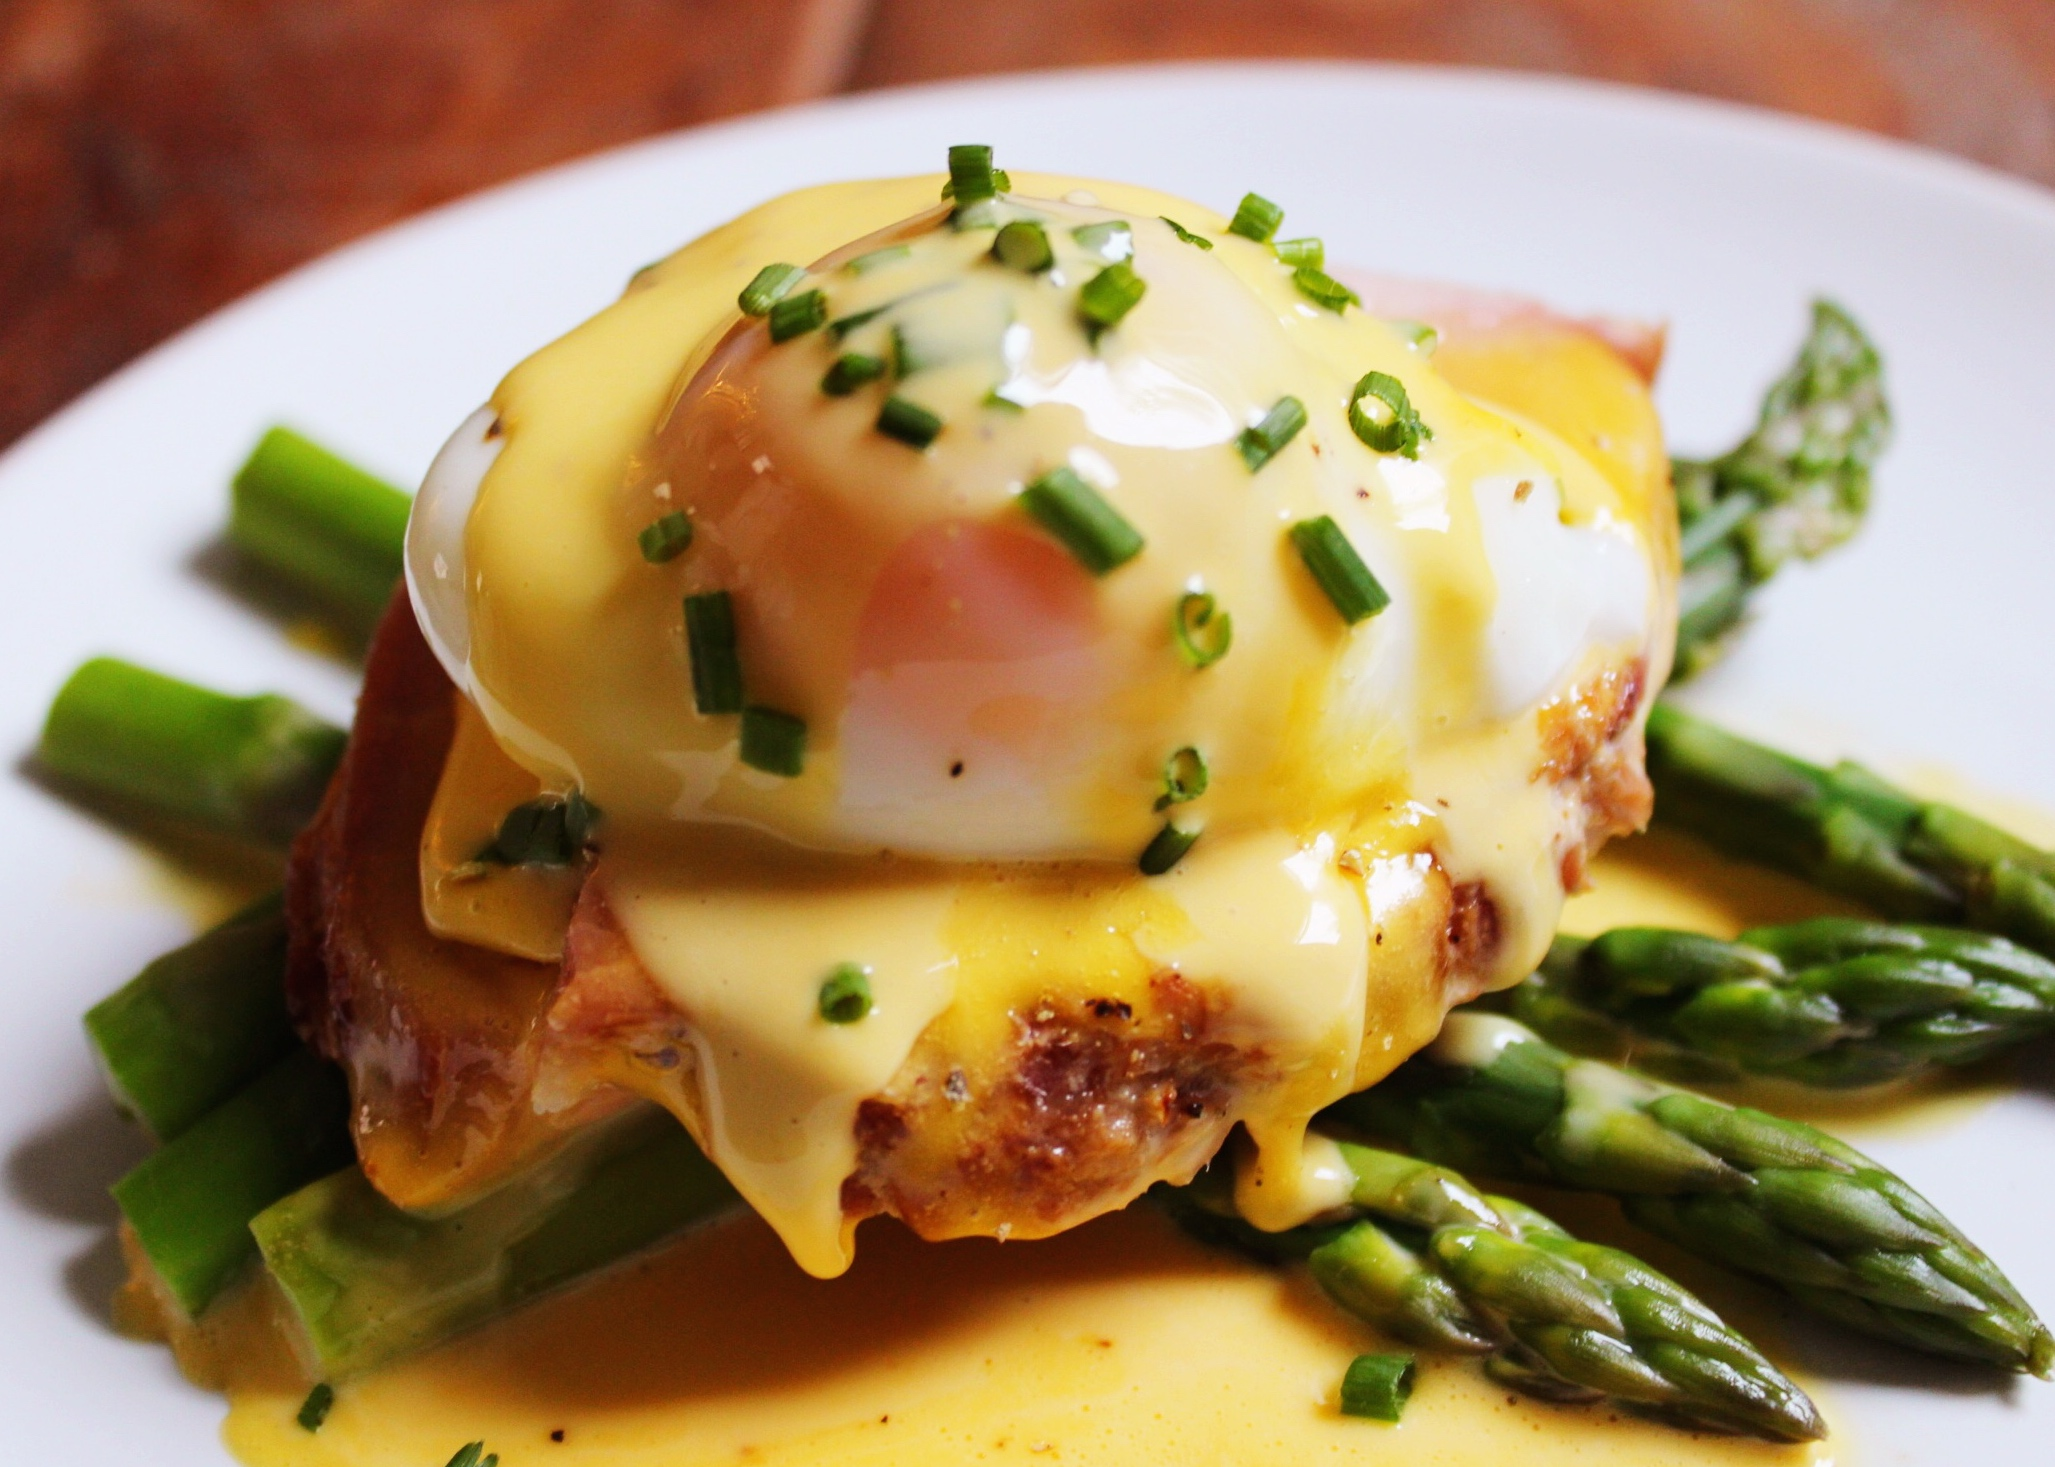 Healthy Hollandaise - The Little Green Spoon